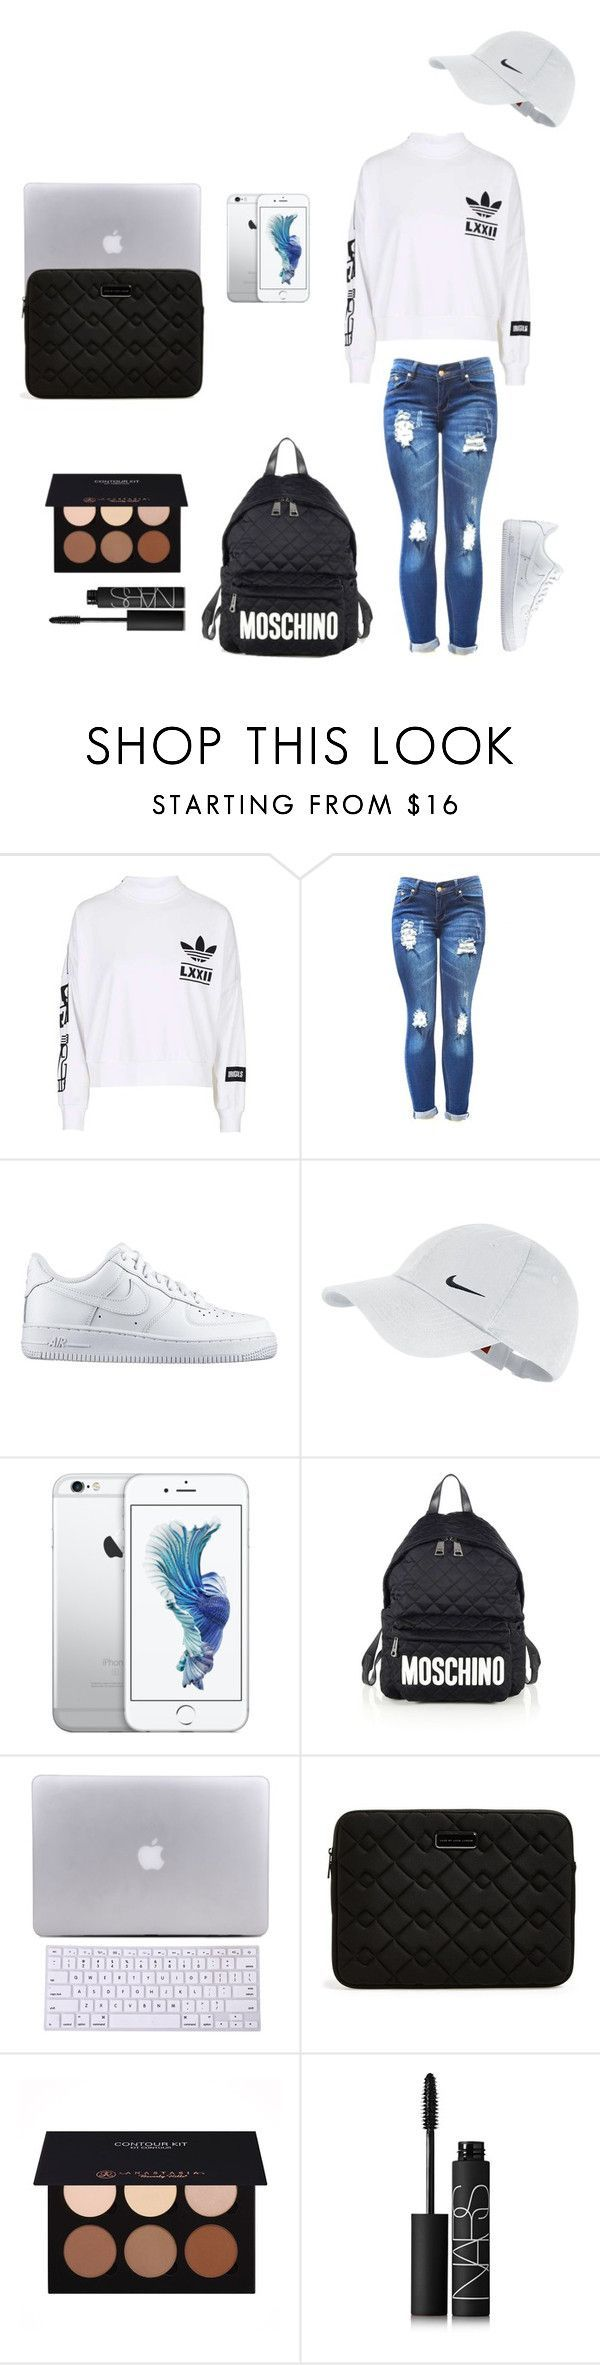 """""""Back to school #2 collab w/ @itsamandarose """" by itsfeliciarose ❤ liked on Polyvore featuring adidas, NIKE, Moschino, Marc by Marc Jacobs, Anastasia Beverly Hills and NARS Cosmetics"""